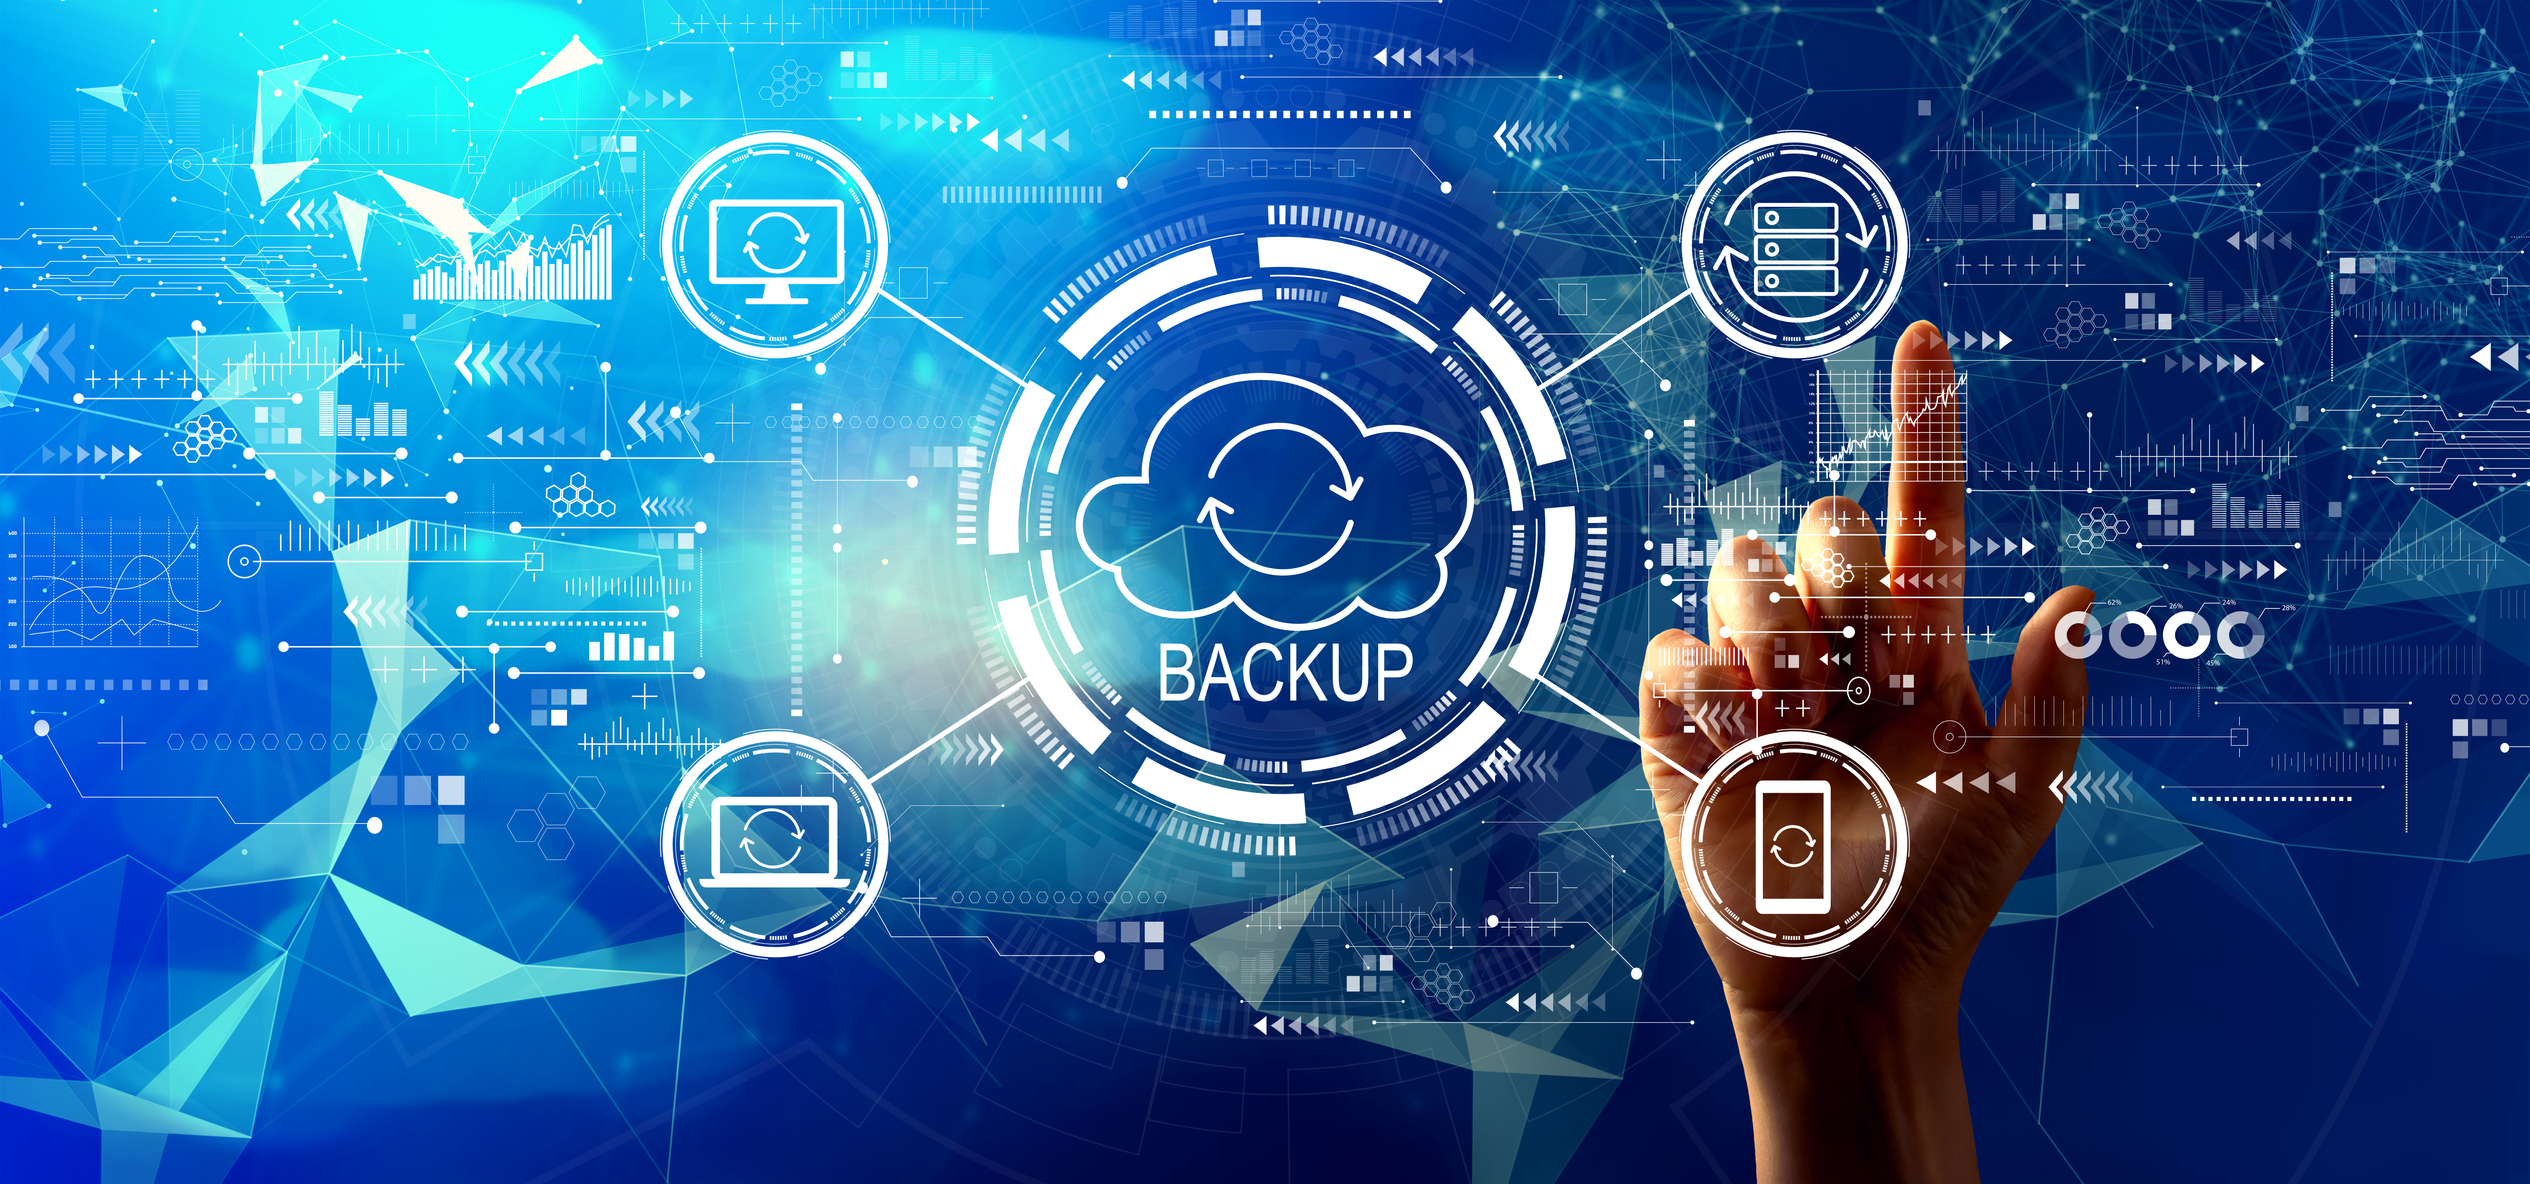 Why Should I not Rely on Microsoft Office 365 for Backup and Recovery?